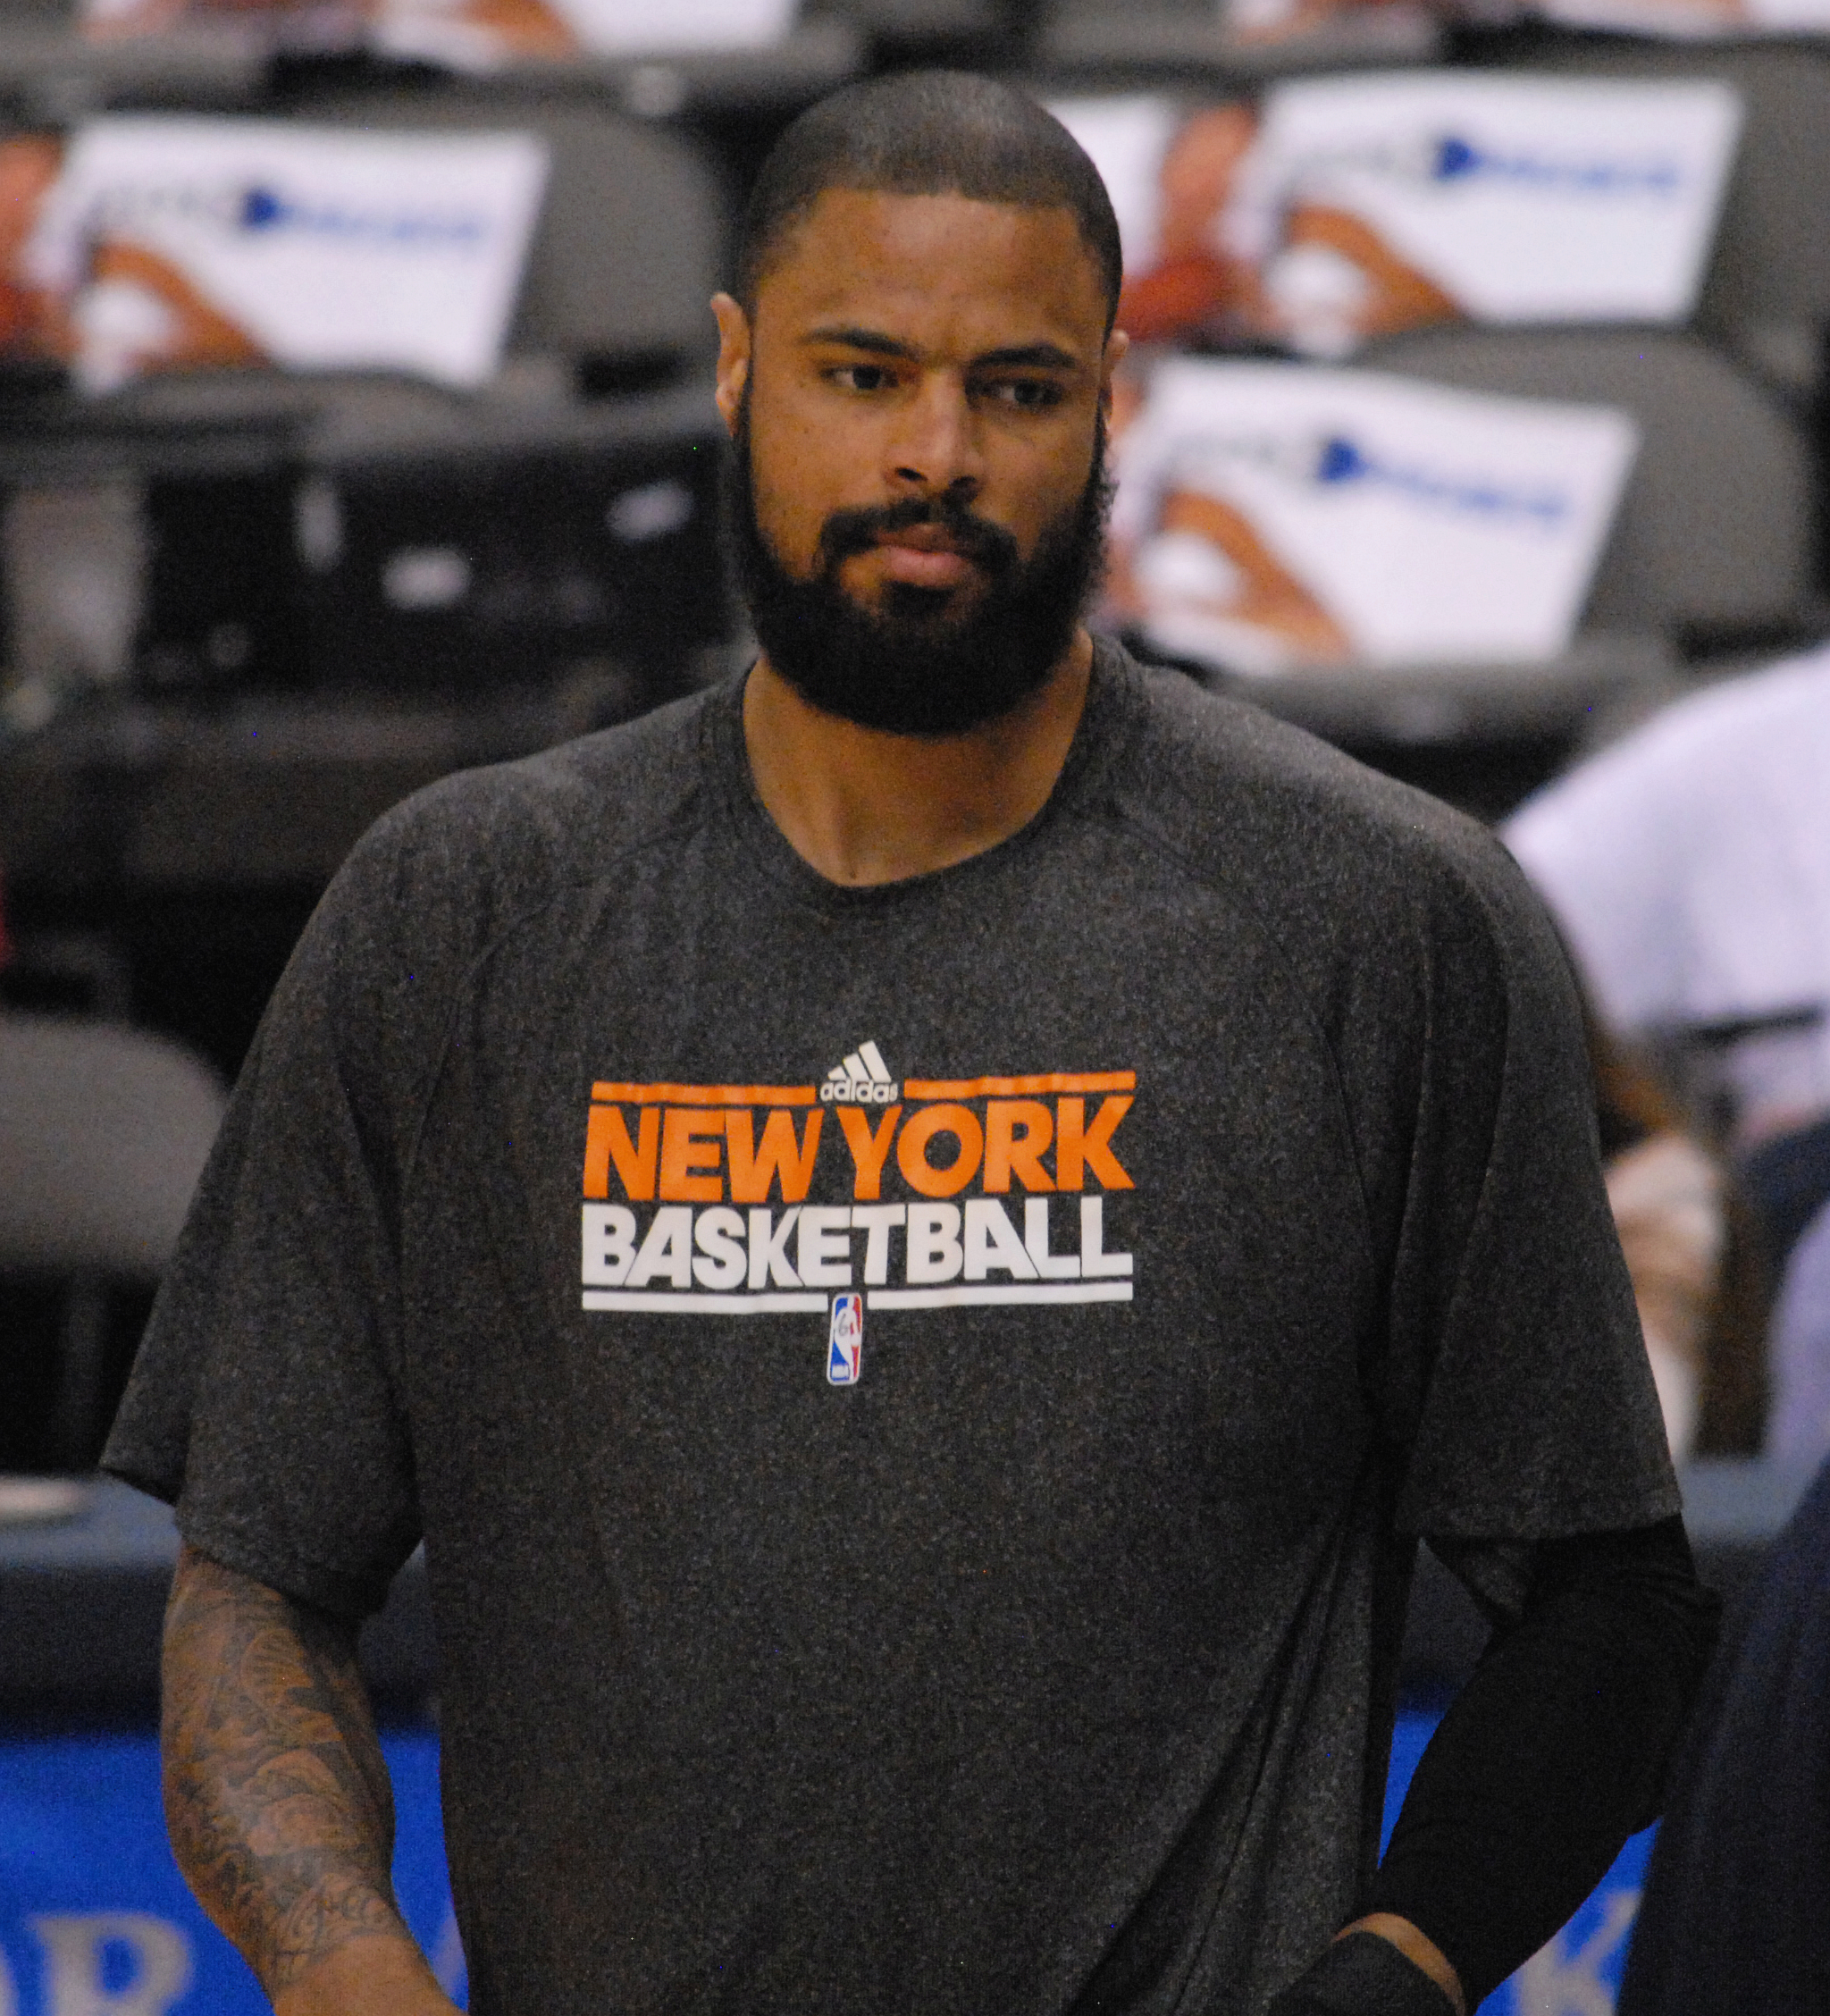 The 35-year old son of father  Frank Chandler and mother Vernie Threadgill Tyson Chandler in 2018 photo. Tyson Chandler earned a  million dollar salary - leaving the net worth at 55 million in 2018